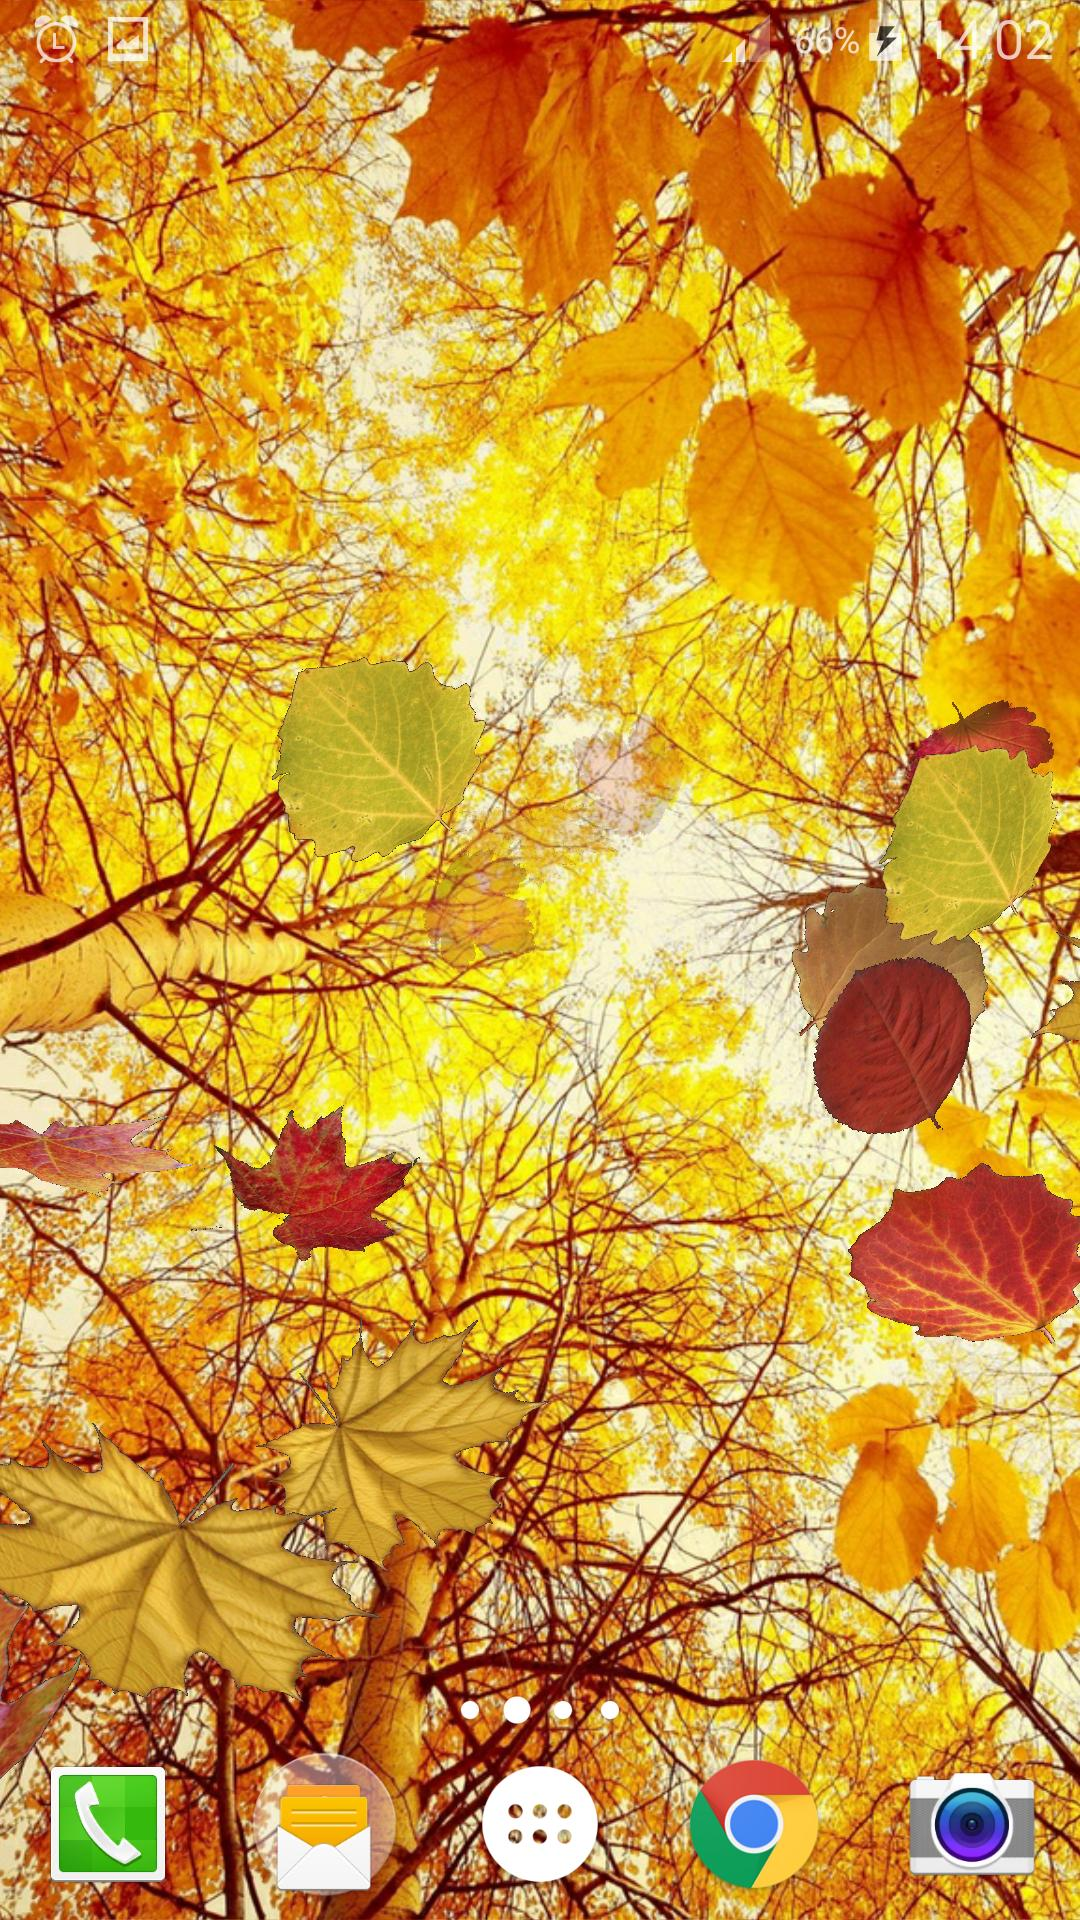 Falling Leaves 3d Live Wallpaper For Android Apk Download